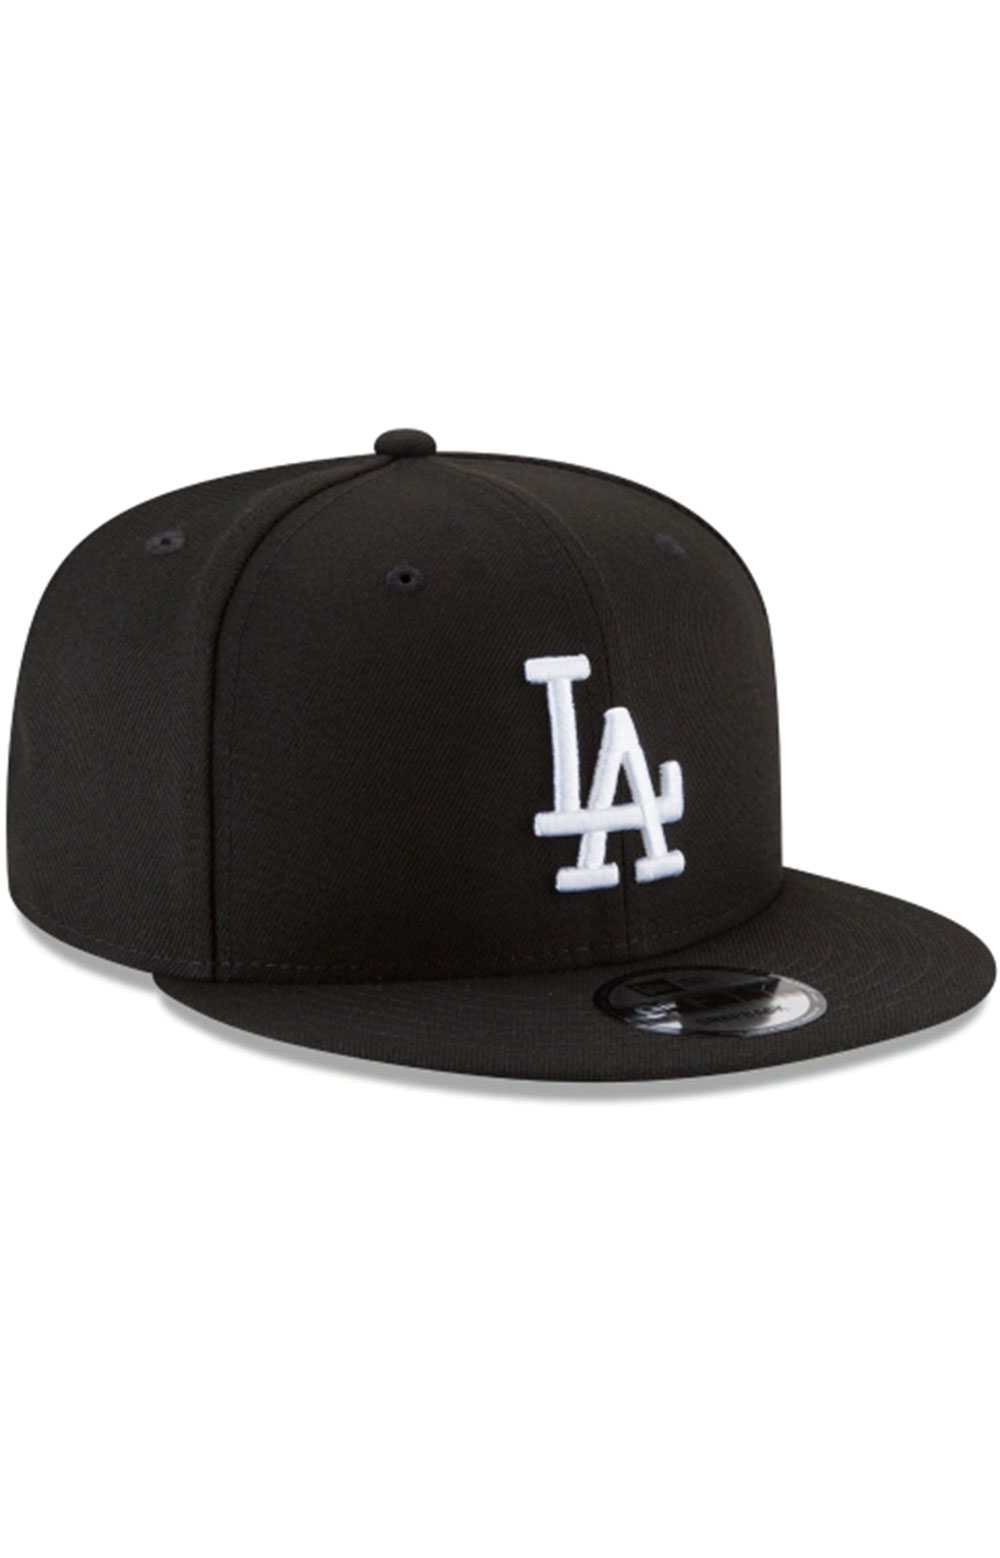 Los Angeles Dodgers Basic 9Fifty Snap-Back Hat - Black/White 6